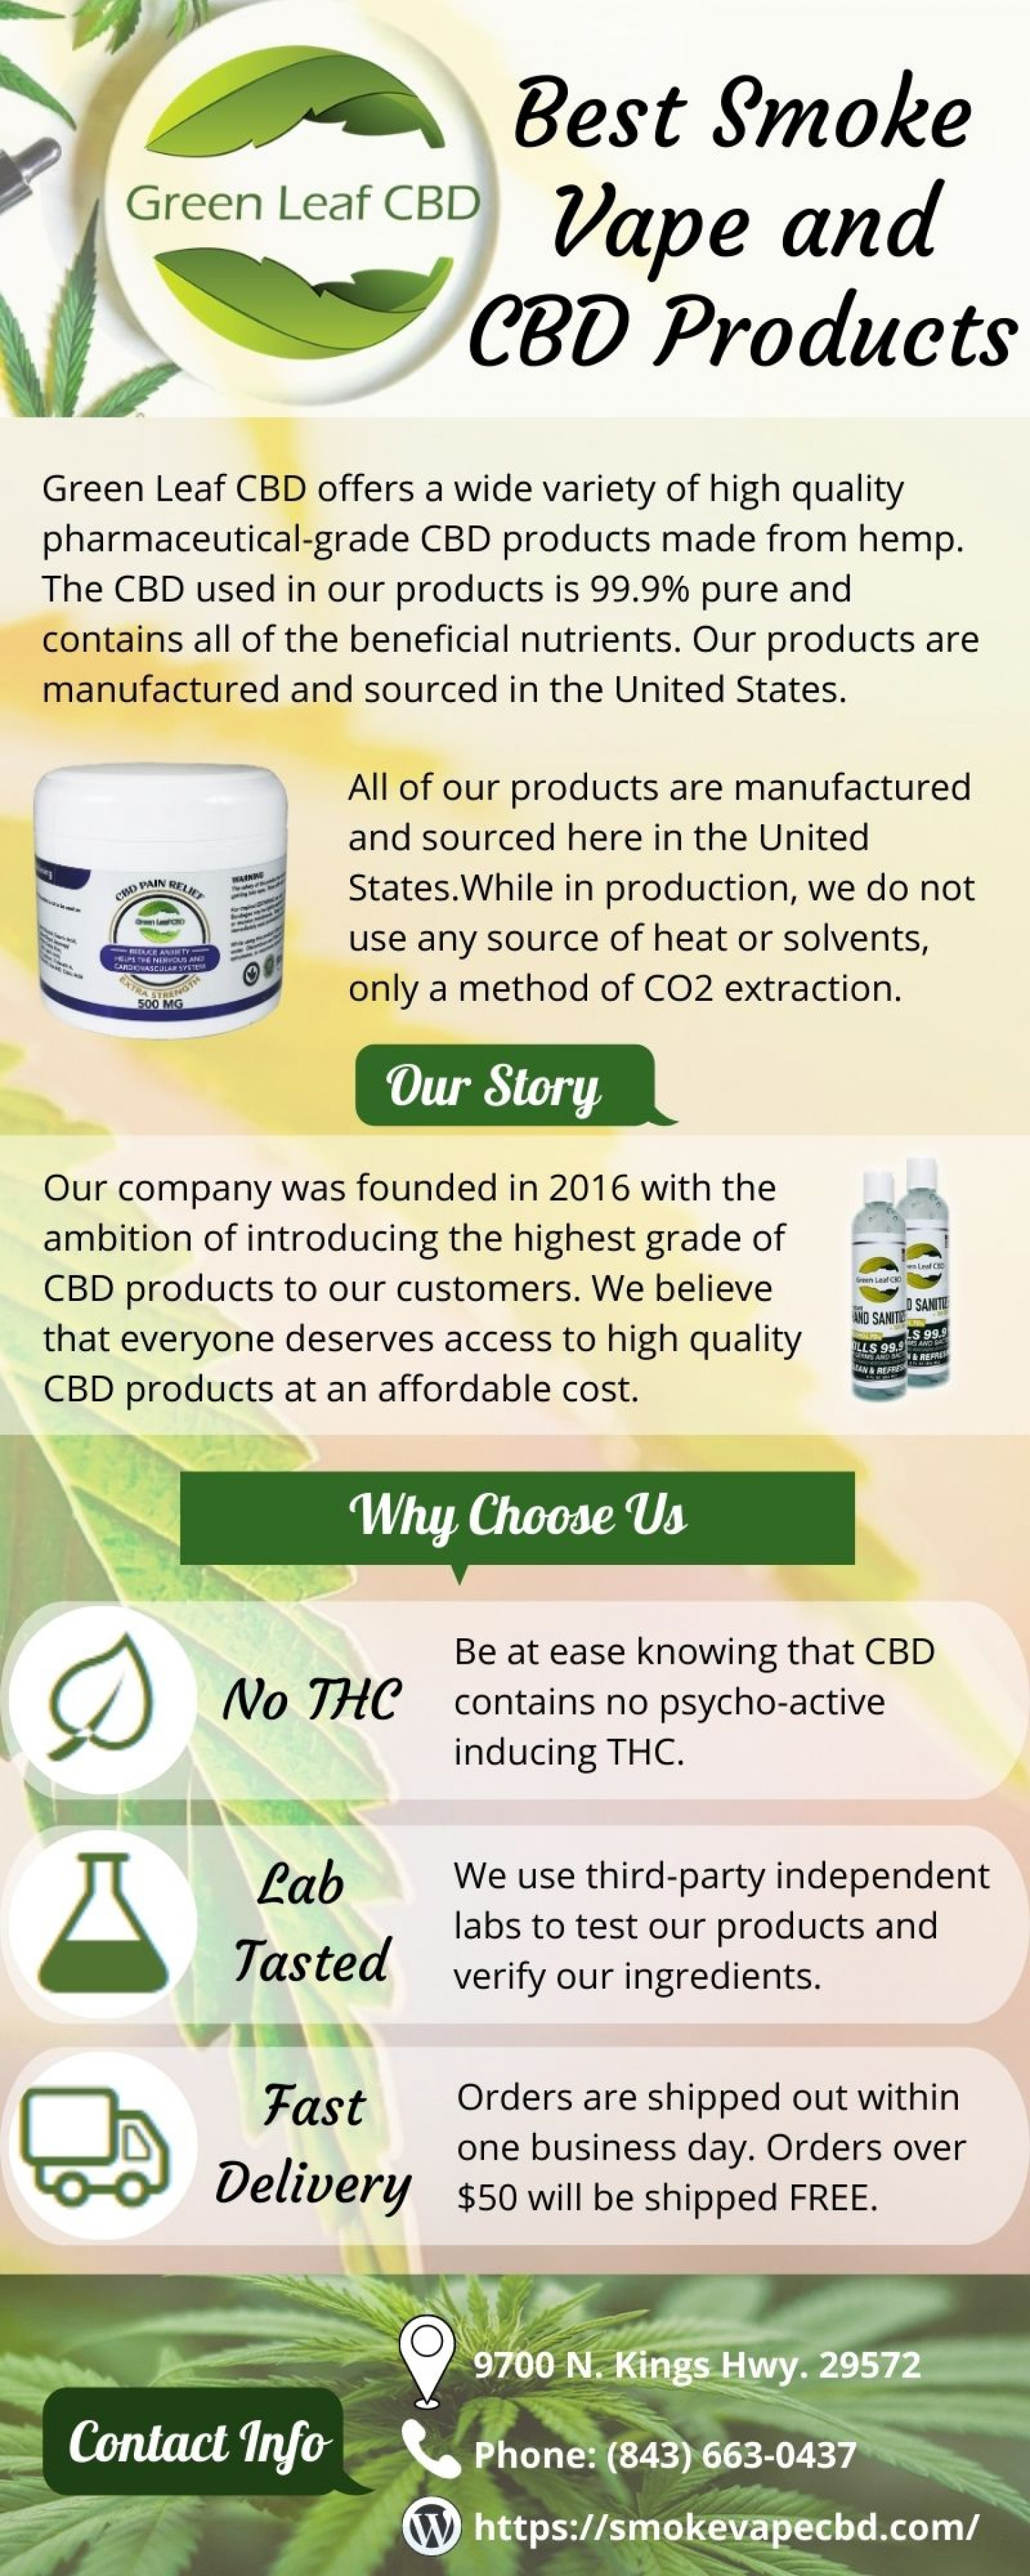 Green Leaf CBD for Variety of Smoke Vape and CBD Products Infographic